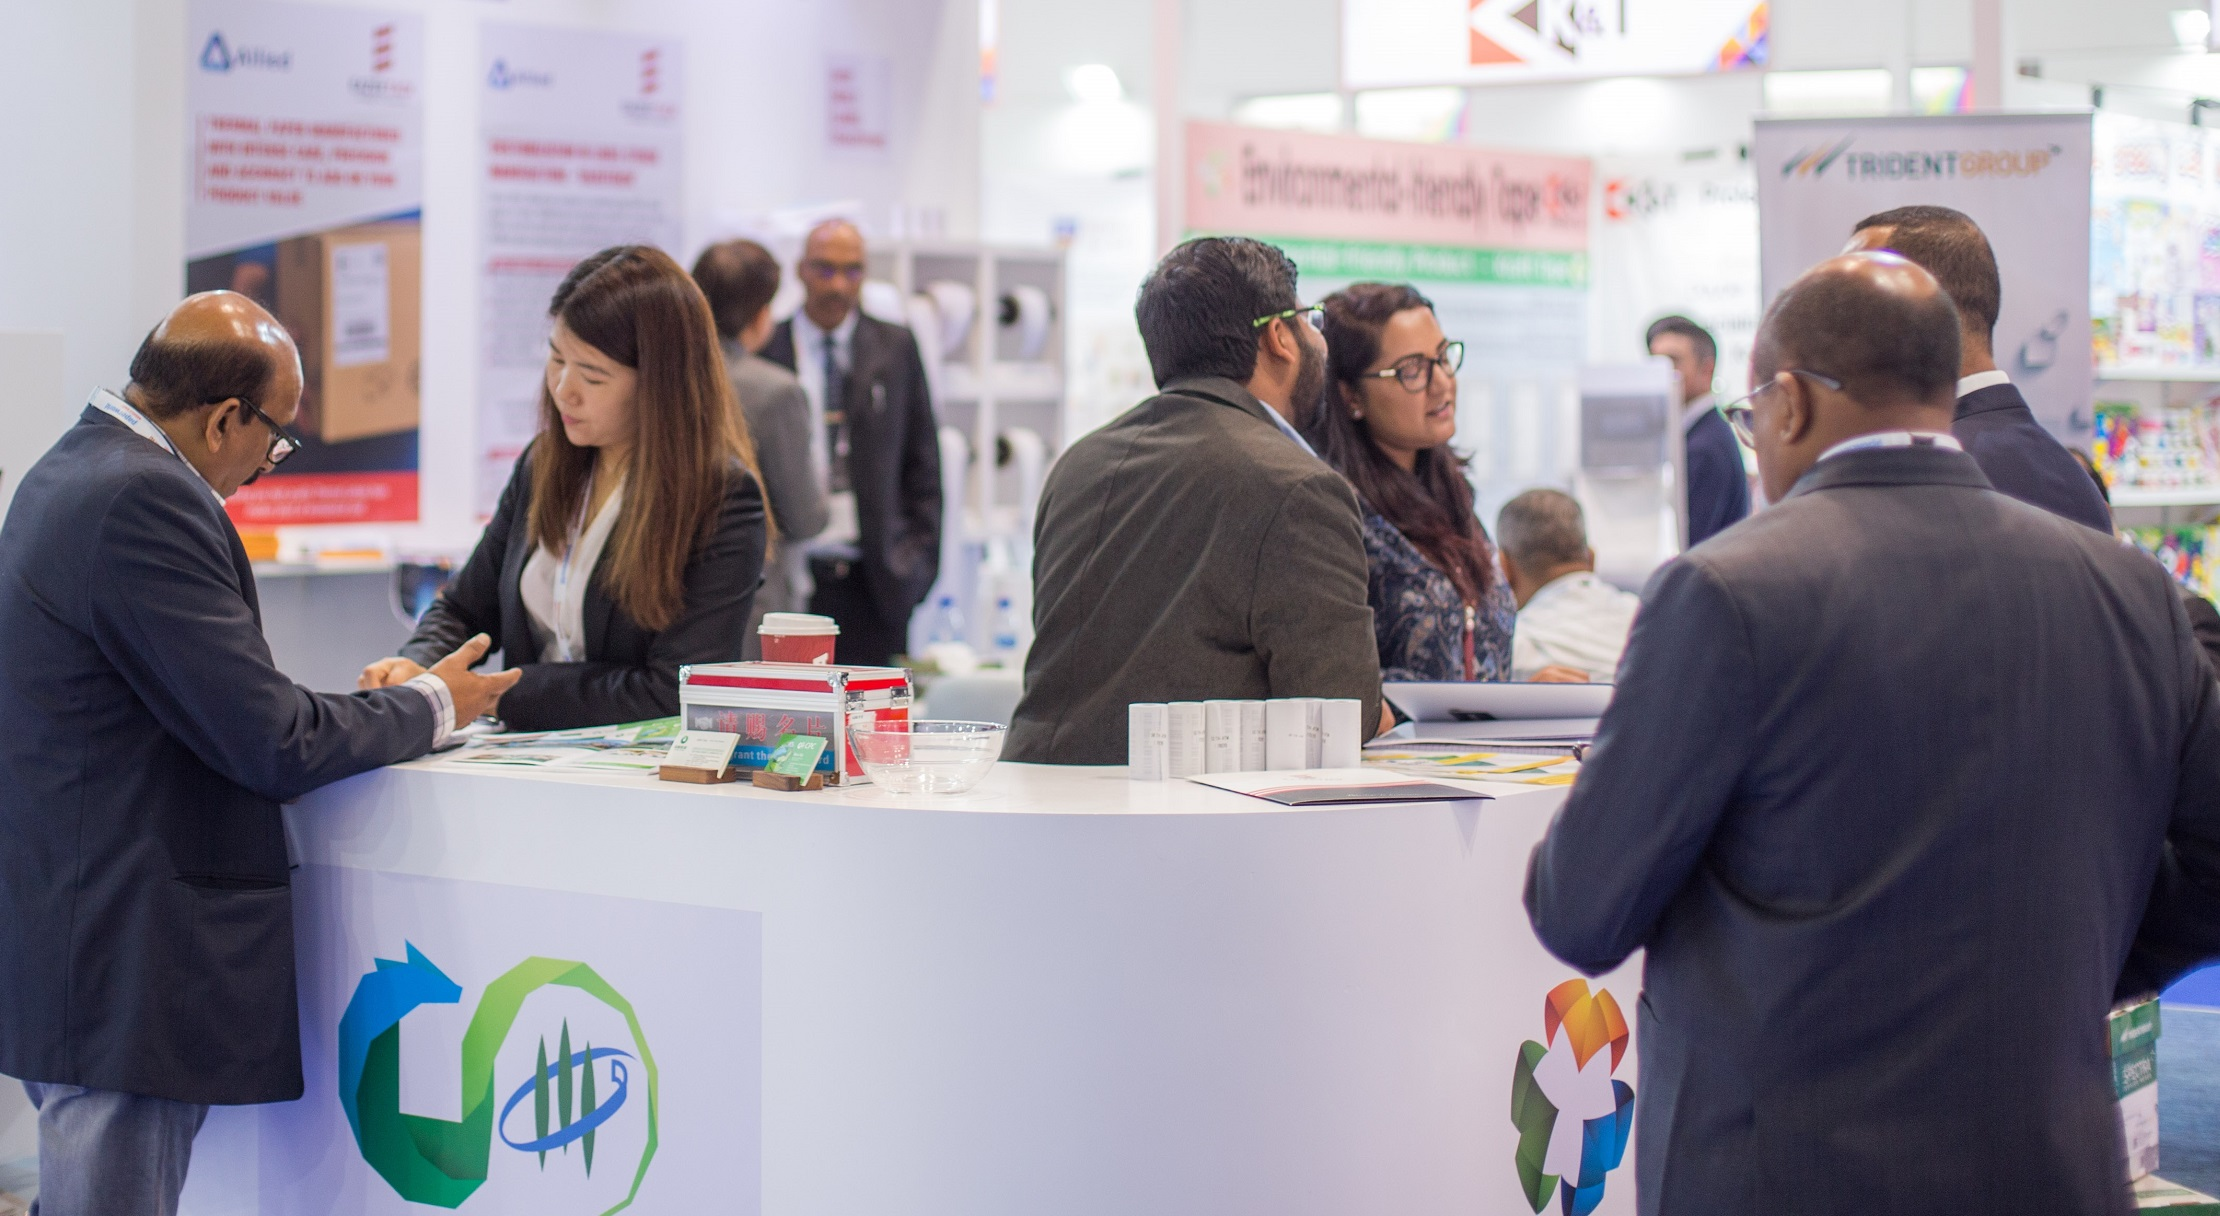 Interior Lifestyle Middle East - Interested in exhibiting?